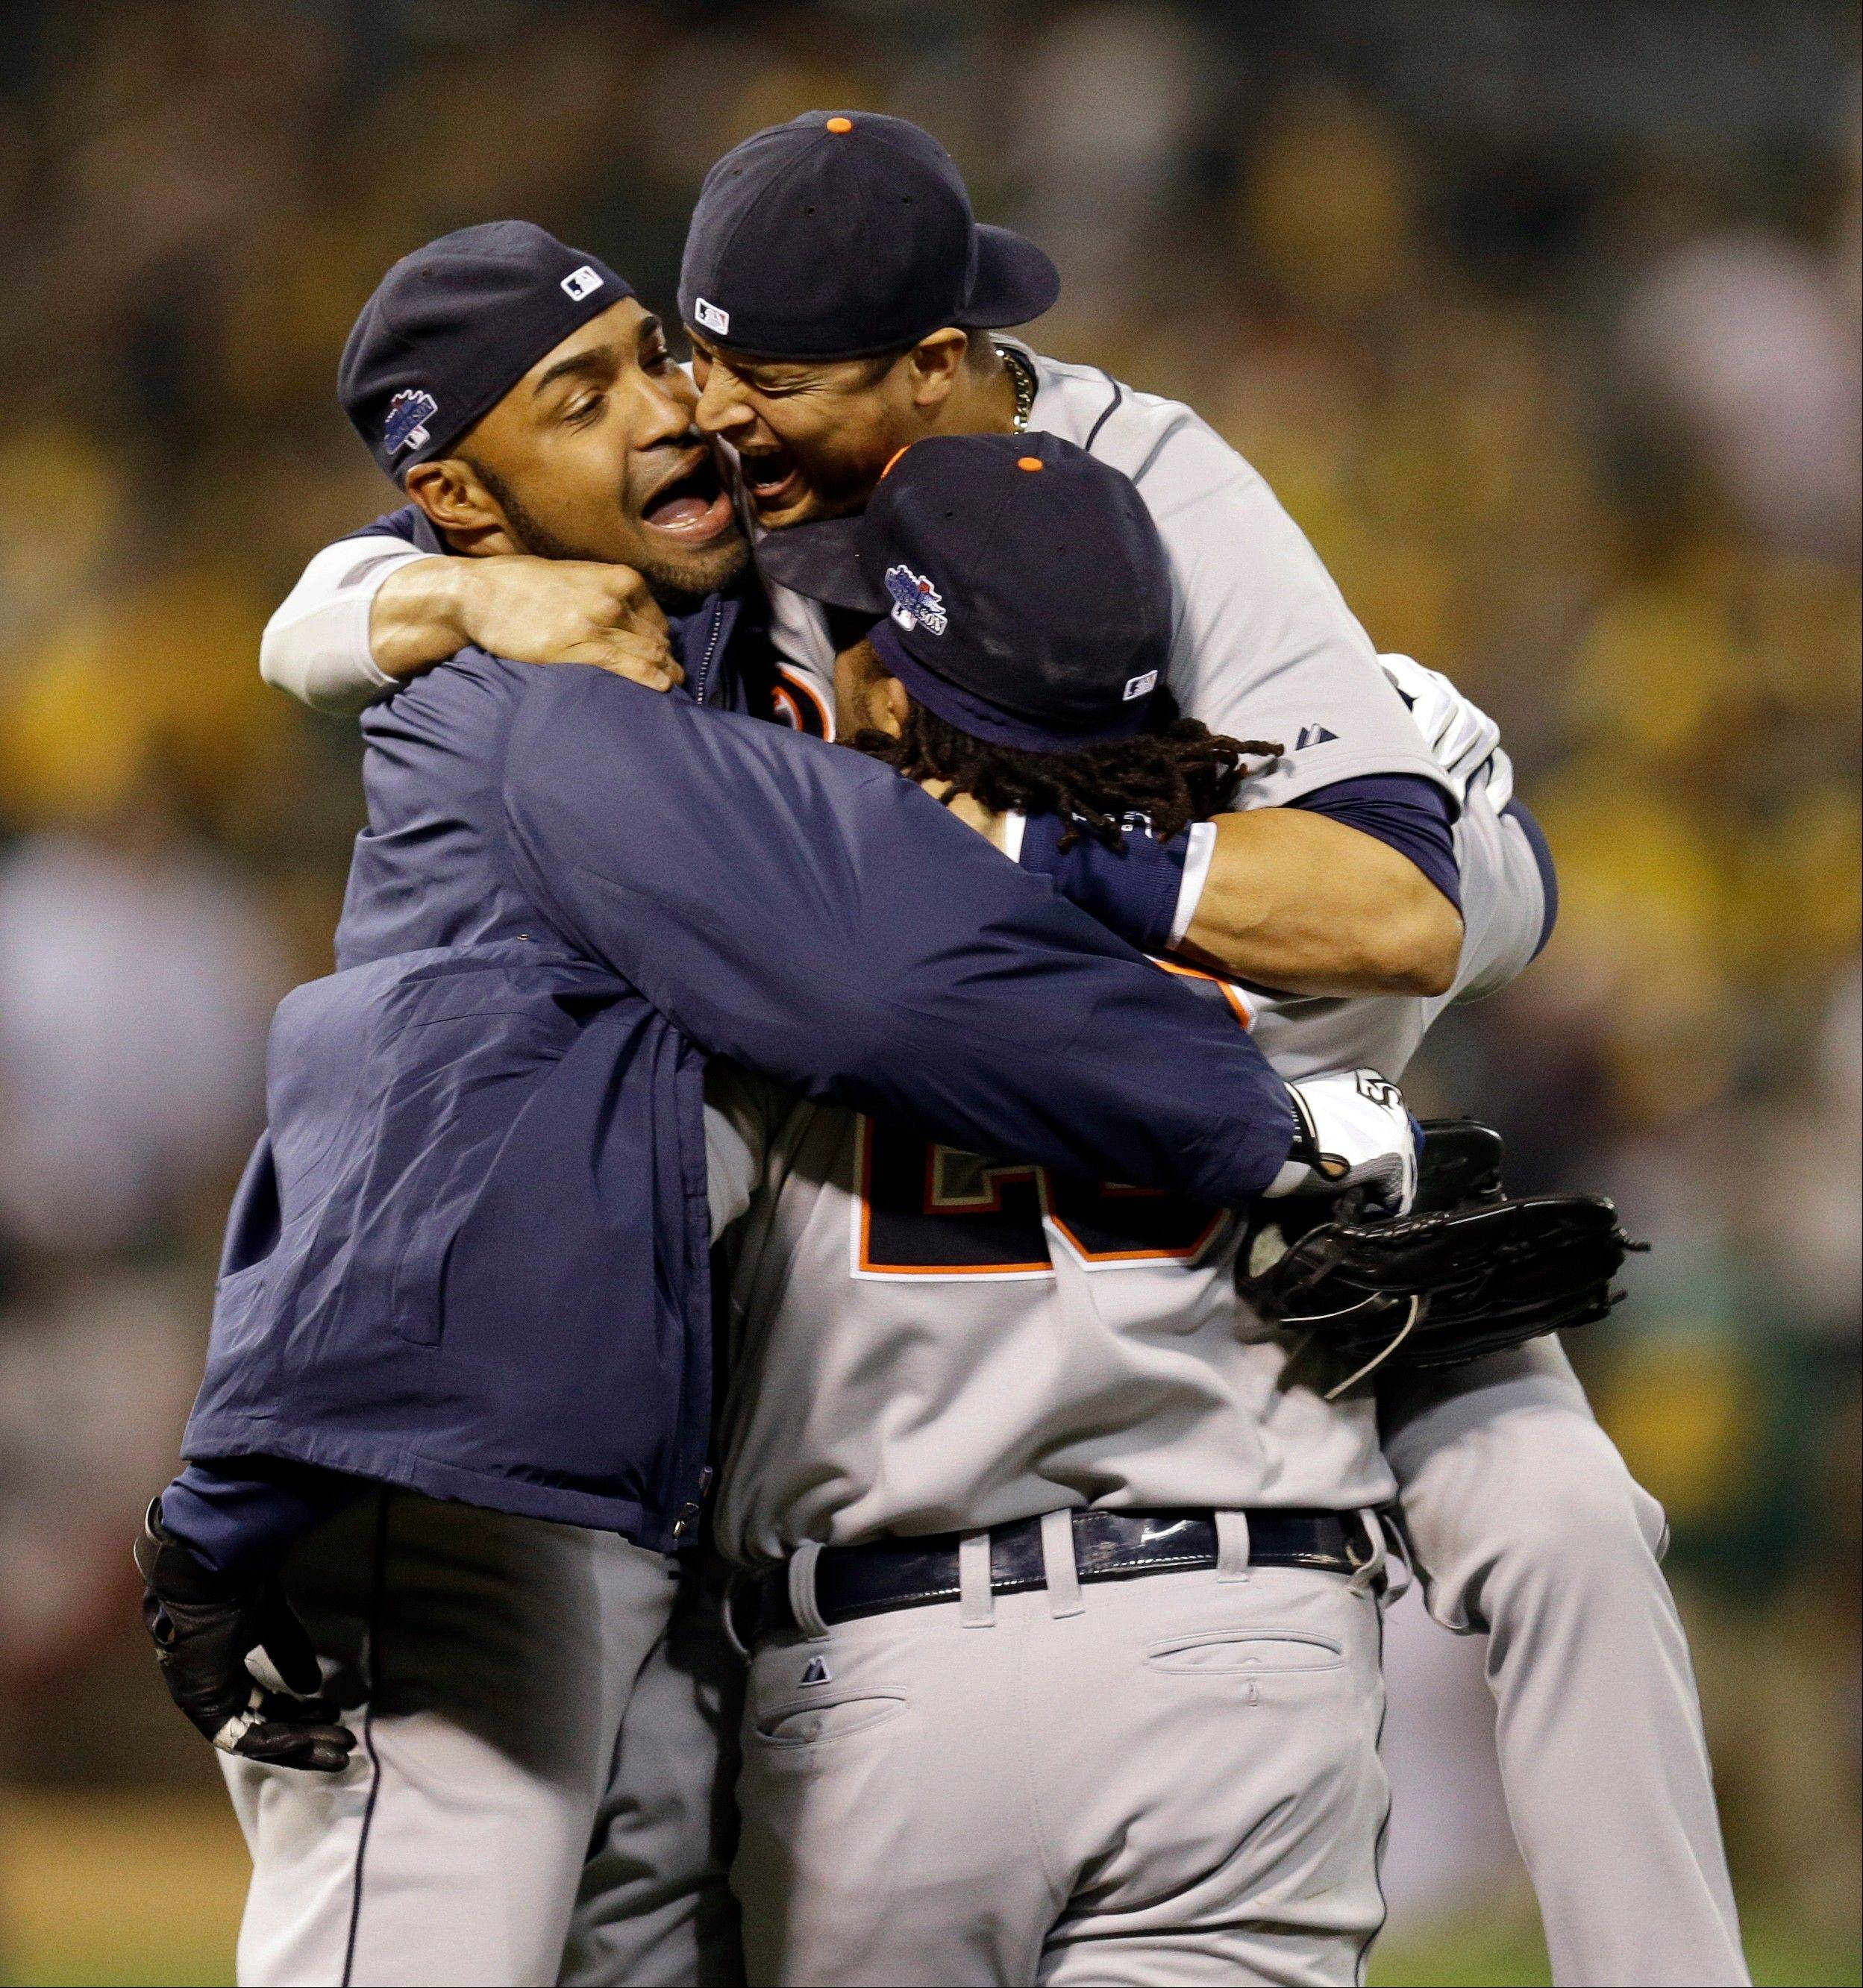 Images: Game 5 of the ALDS